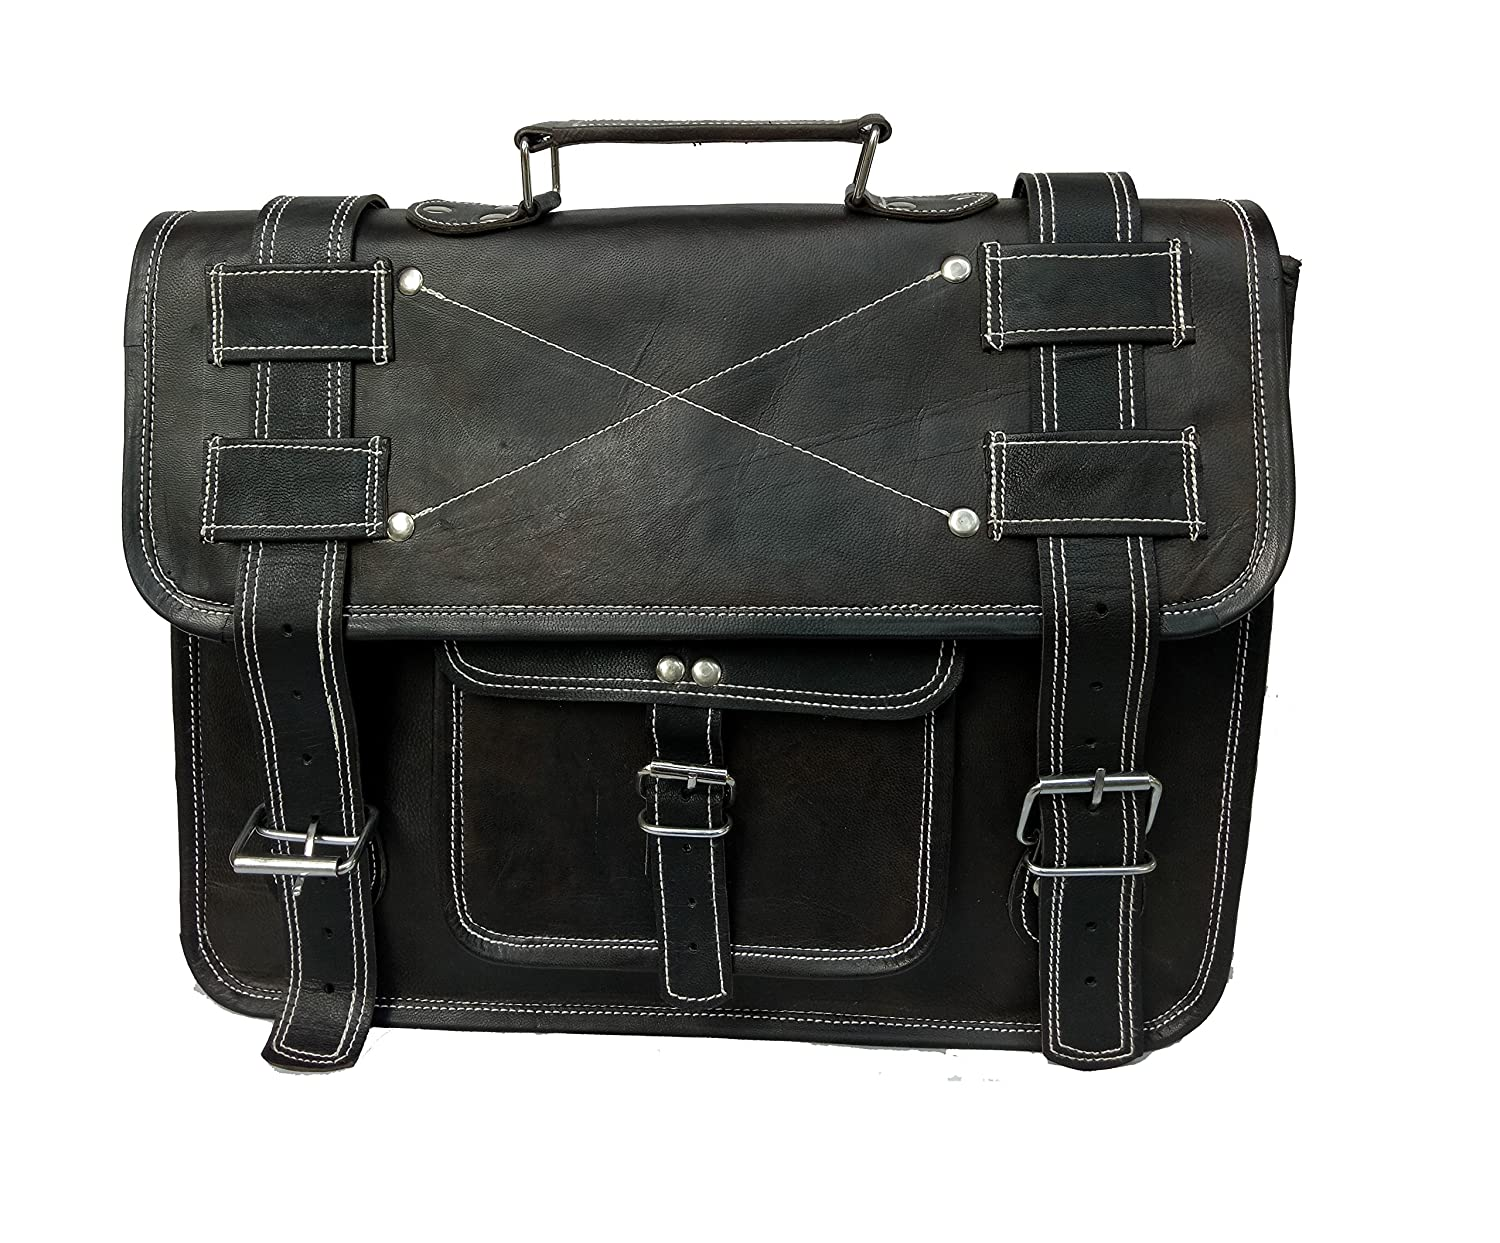 Incredible Antique Arts 15 inch Black Leather Messenger Bag Black Laptop Bag Messenger Bag Satchel Bag Padded Messenger Bag Black Leather Laptop Bag Use for Laptop iPad McBook Tablet etc